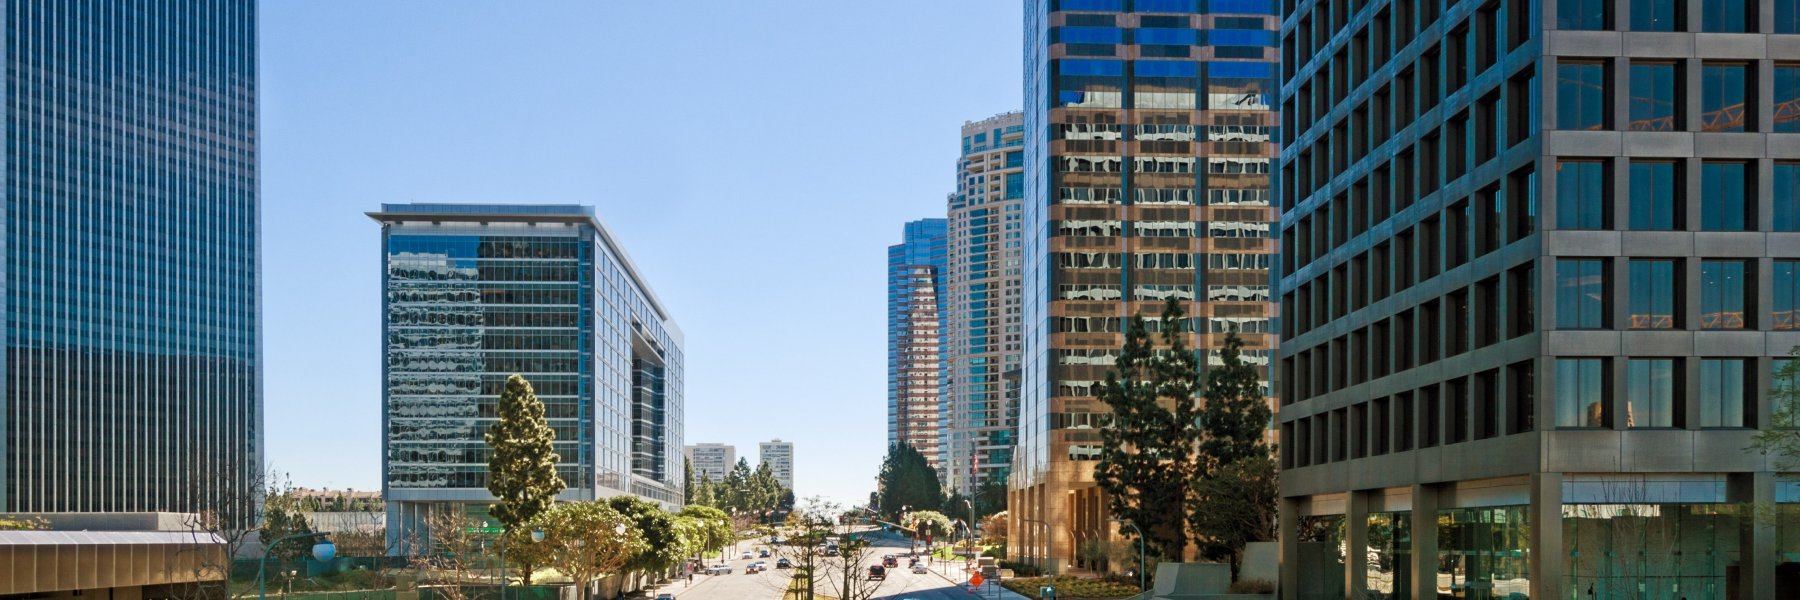 Century City is a community of homes in Los Angeles California